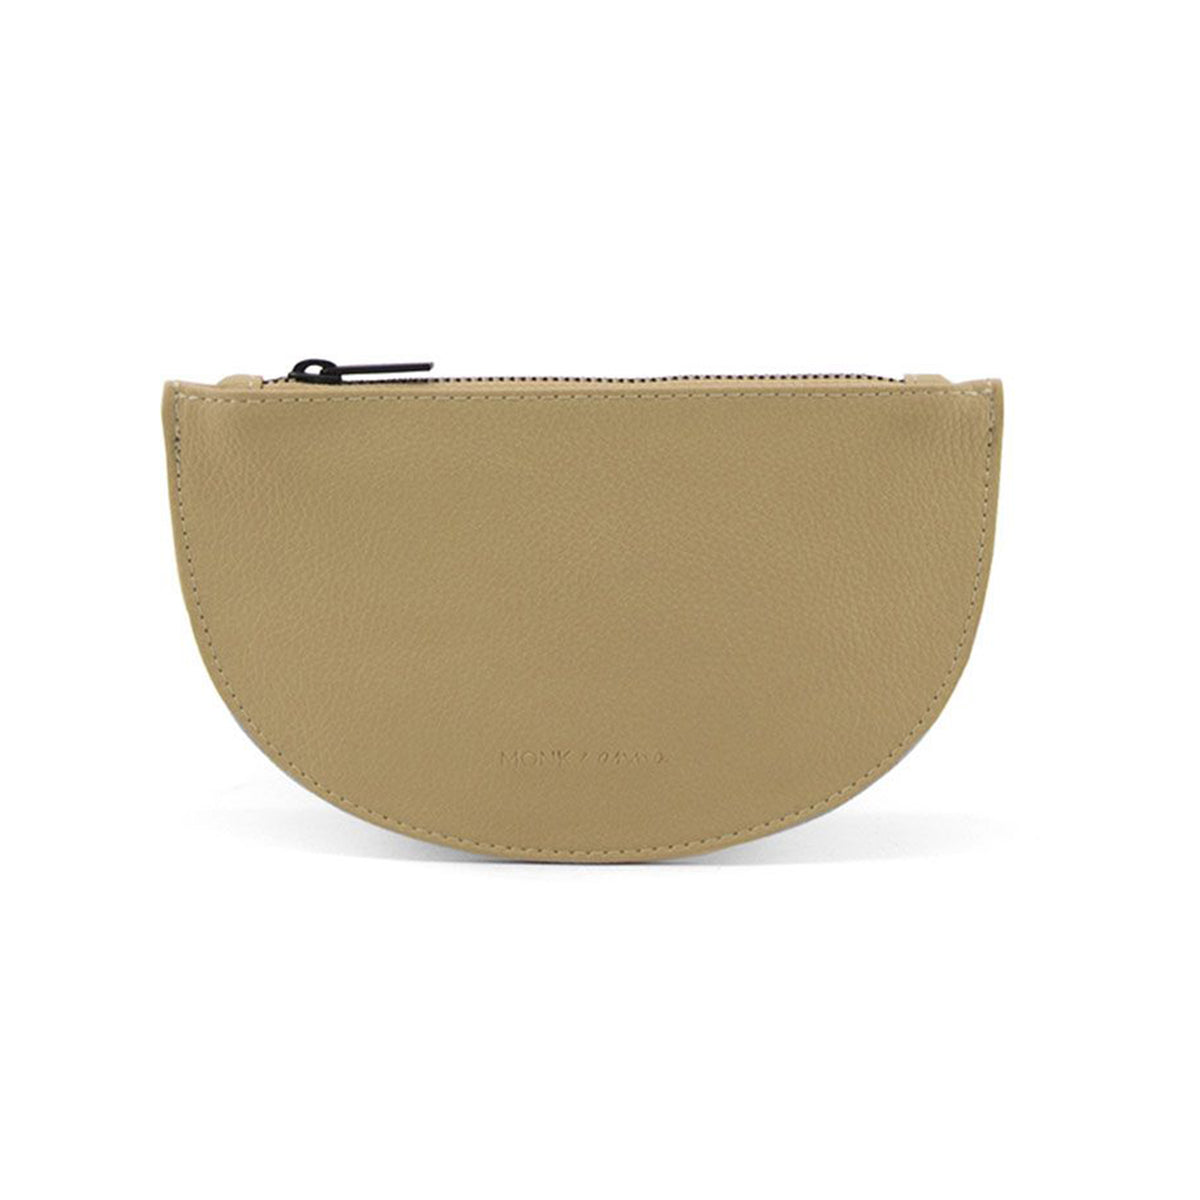 Monk & Anna Mondo Moon Wallet In Straw - Scandi Minimal